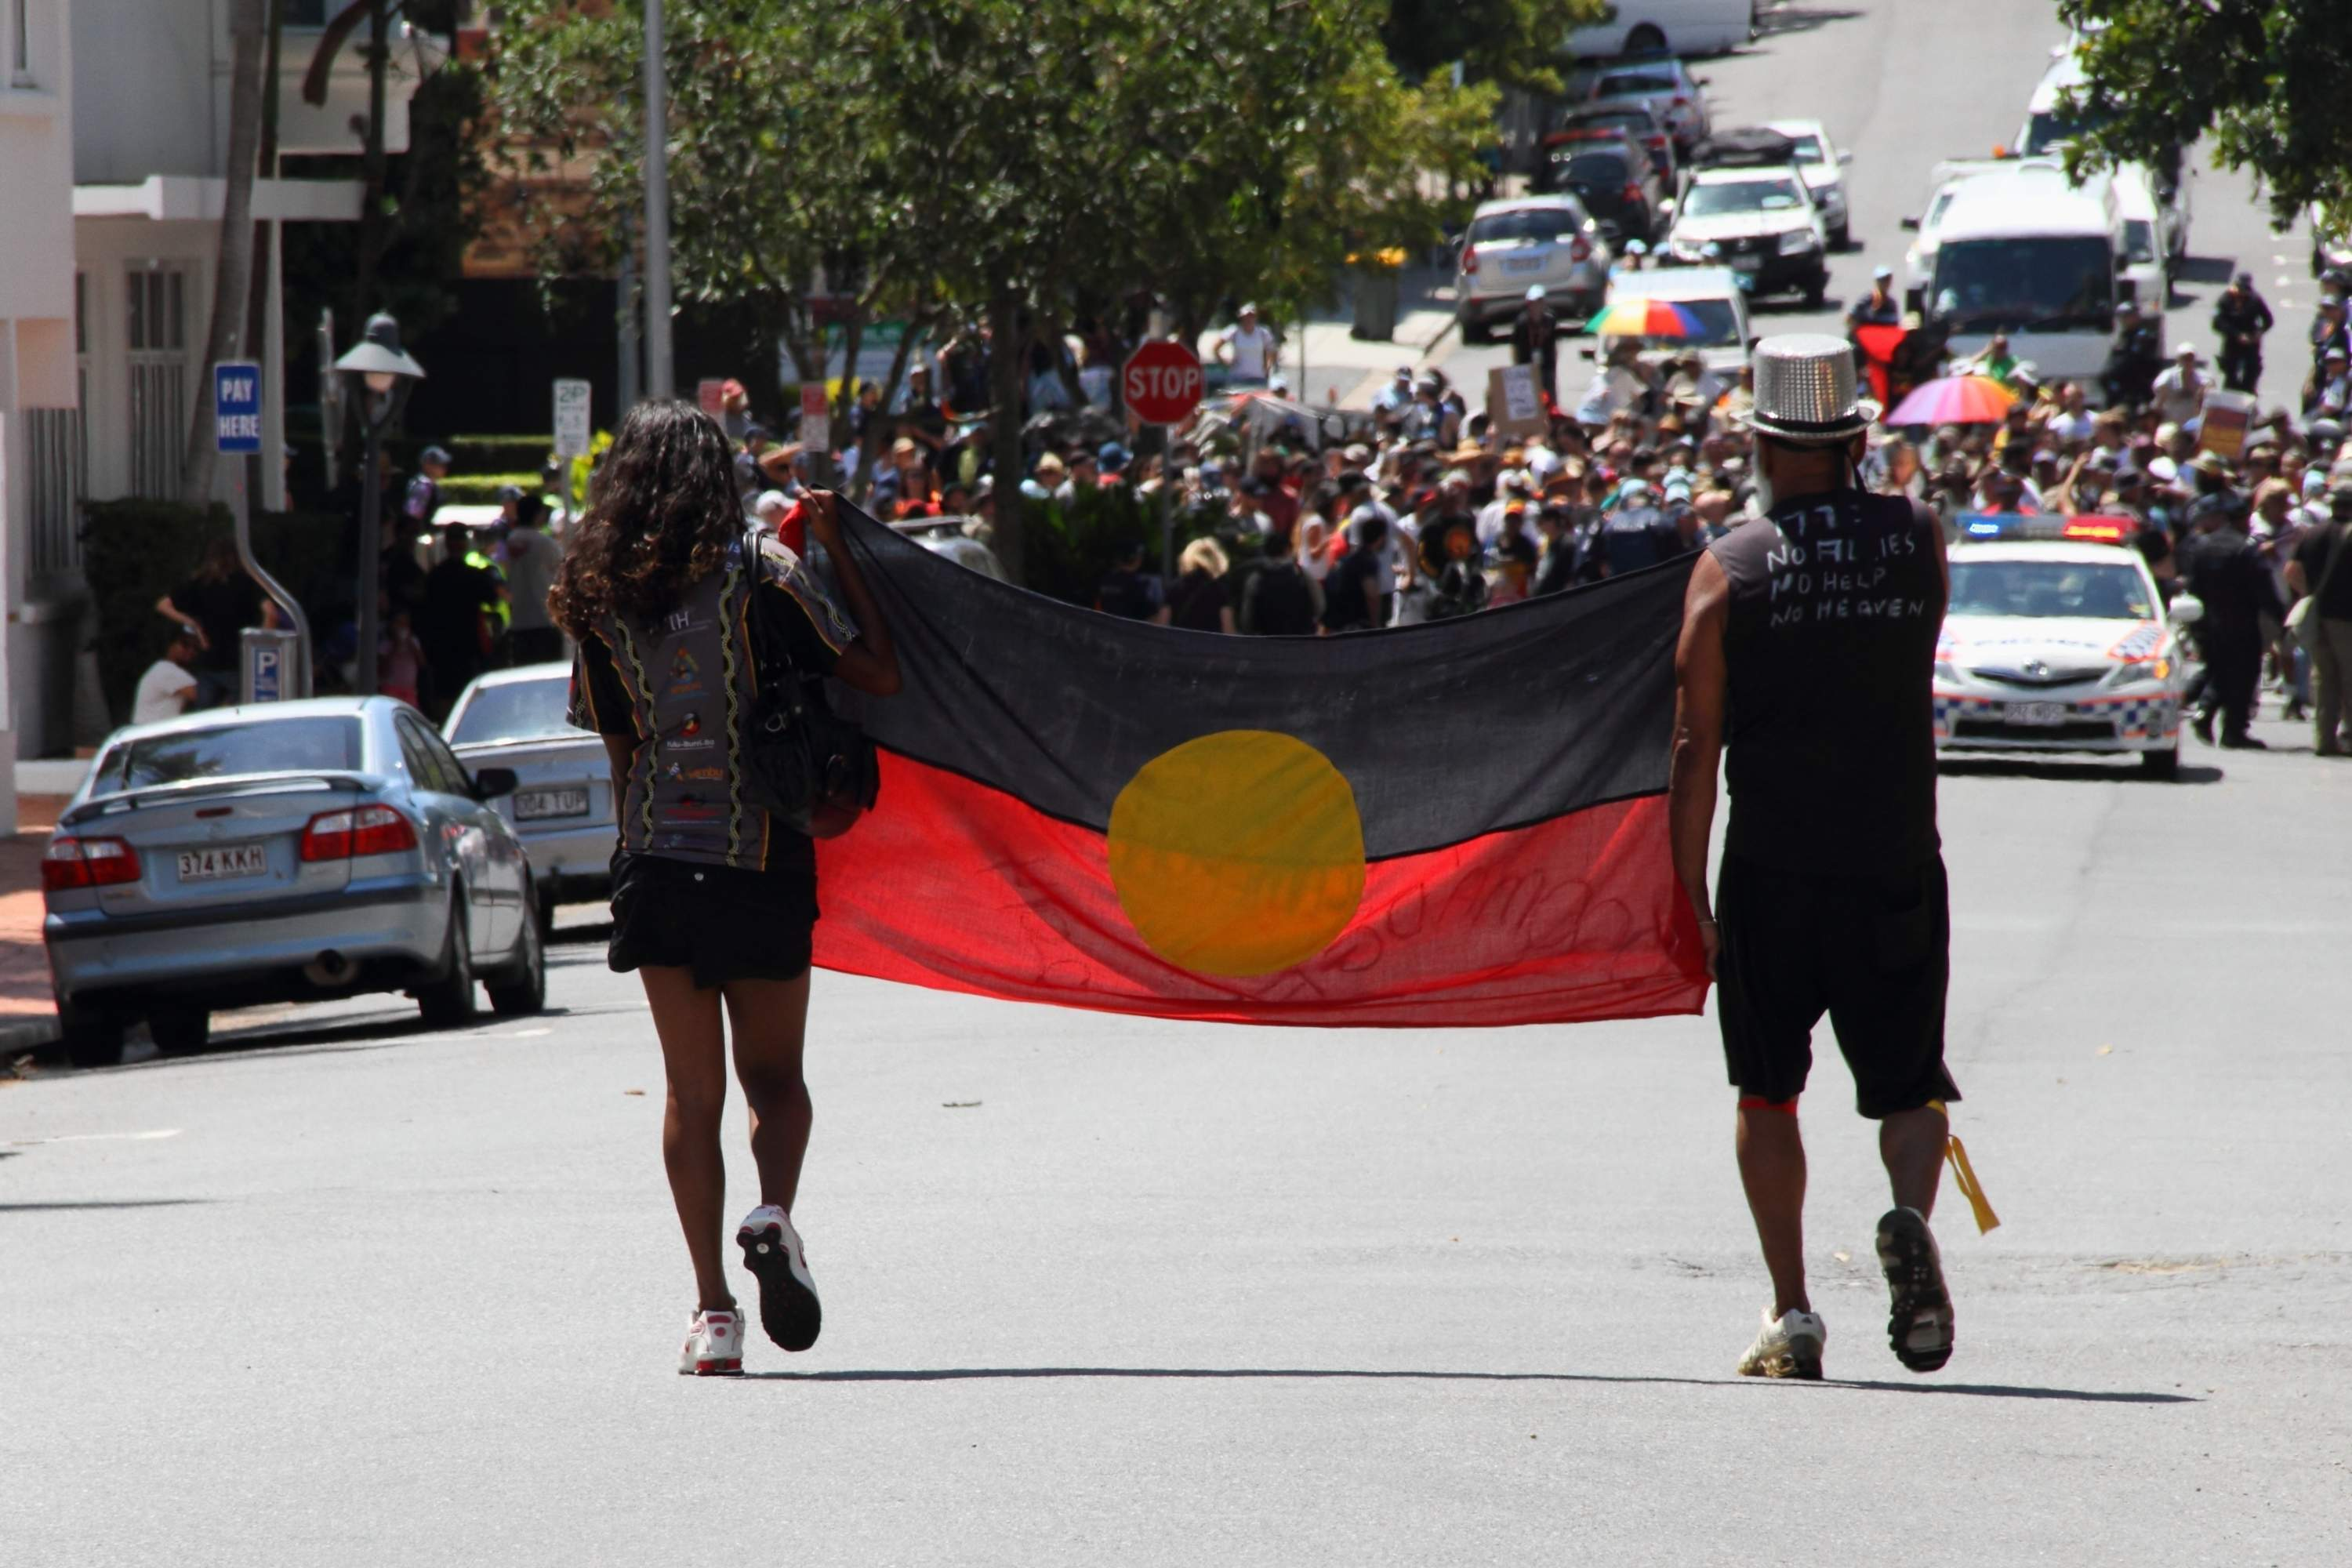 Australia Day: birth of a nation or the start of two centuries of persecution?